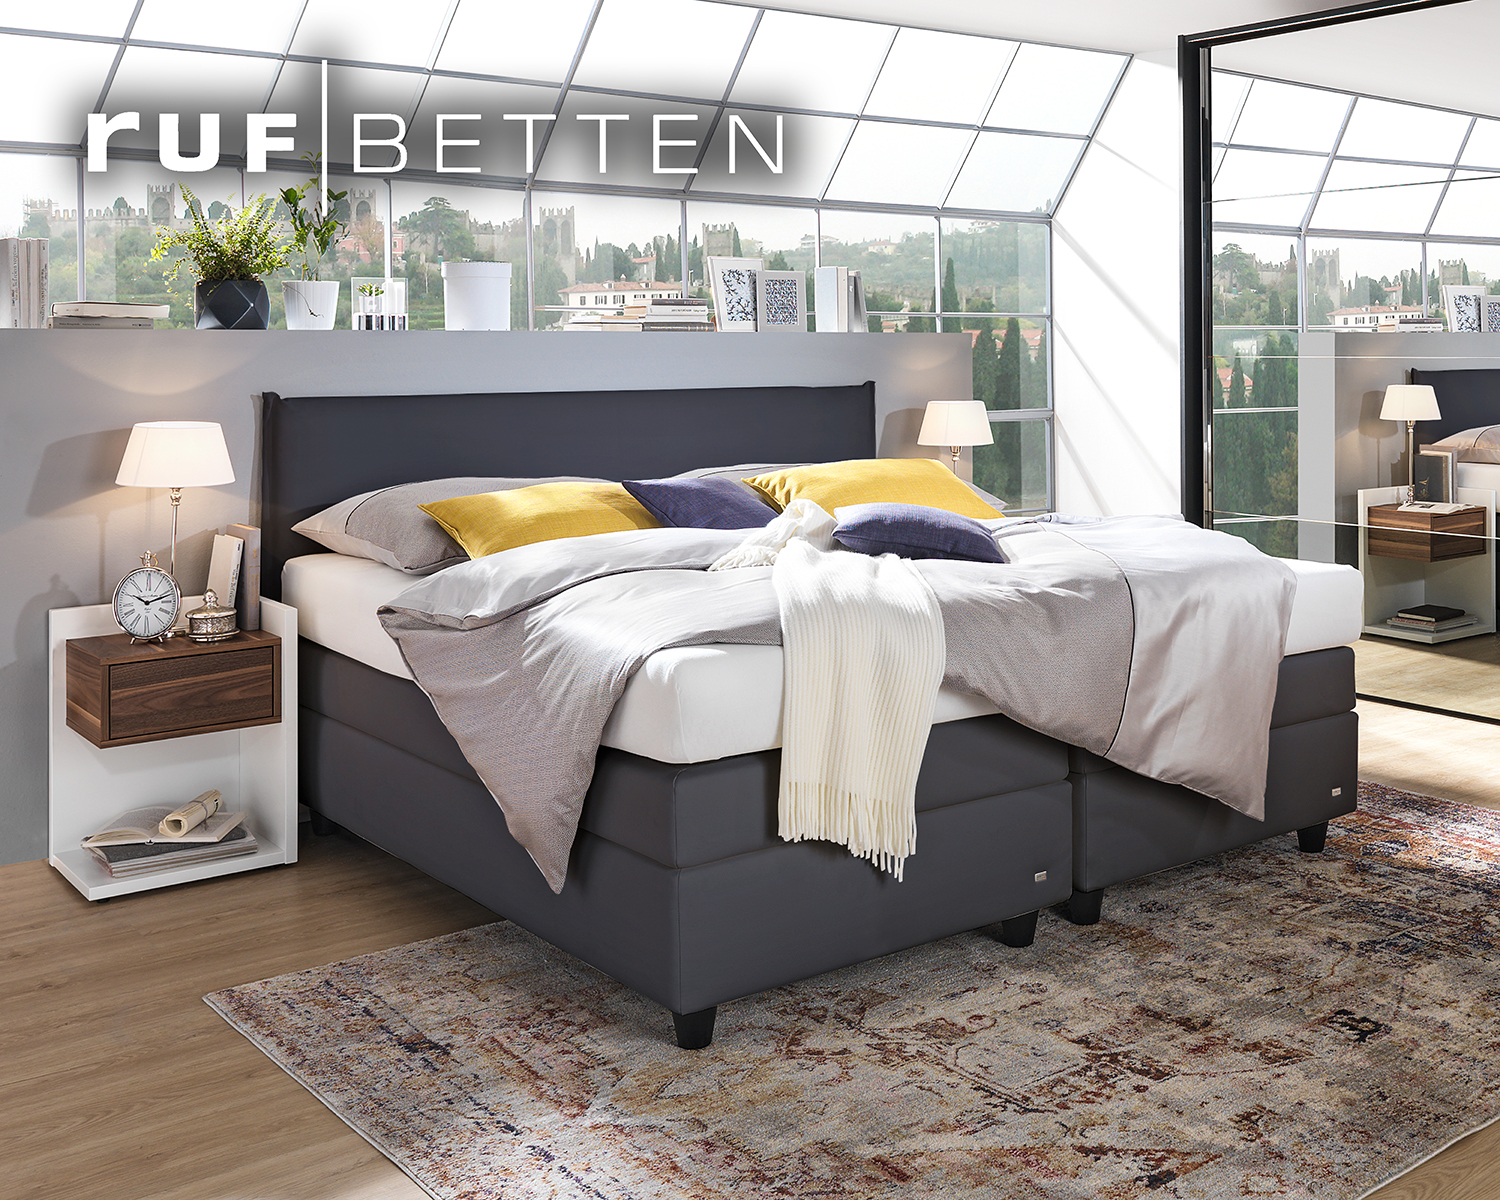 anzeige aktionsfinale bei m bel mahler 30 auf polsterm bel und boxspringbetten s dwest. Black Bedroom Furniture Sets. Home Design Ideas